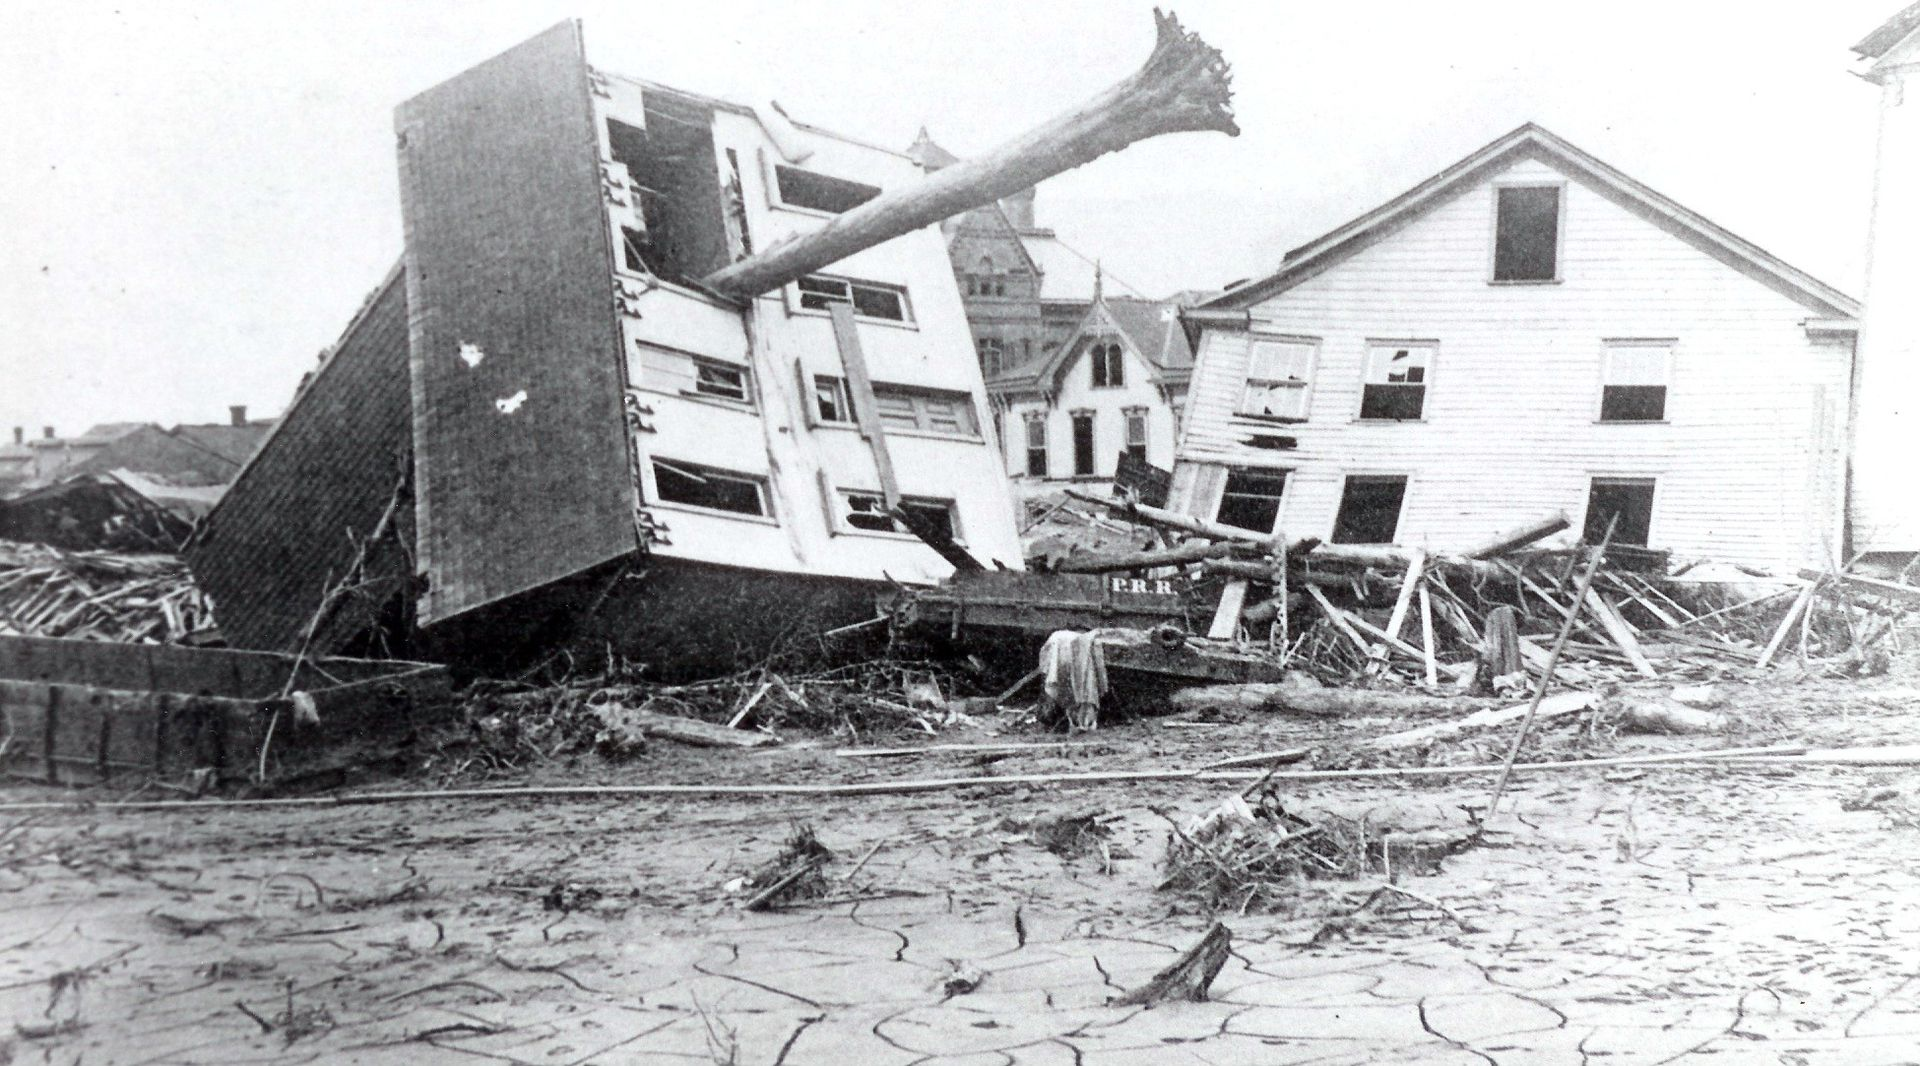 A tree juts out of an upended home in Johnstown, Pennsylvania, after the devastating 1889 flood, one of the deadliest natural disasters in American history.